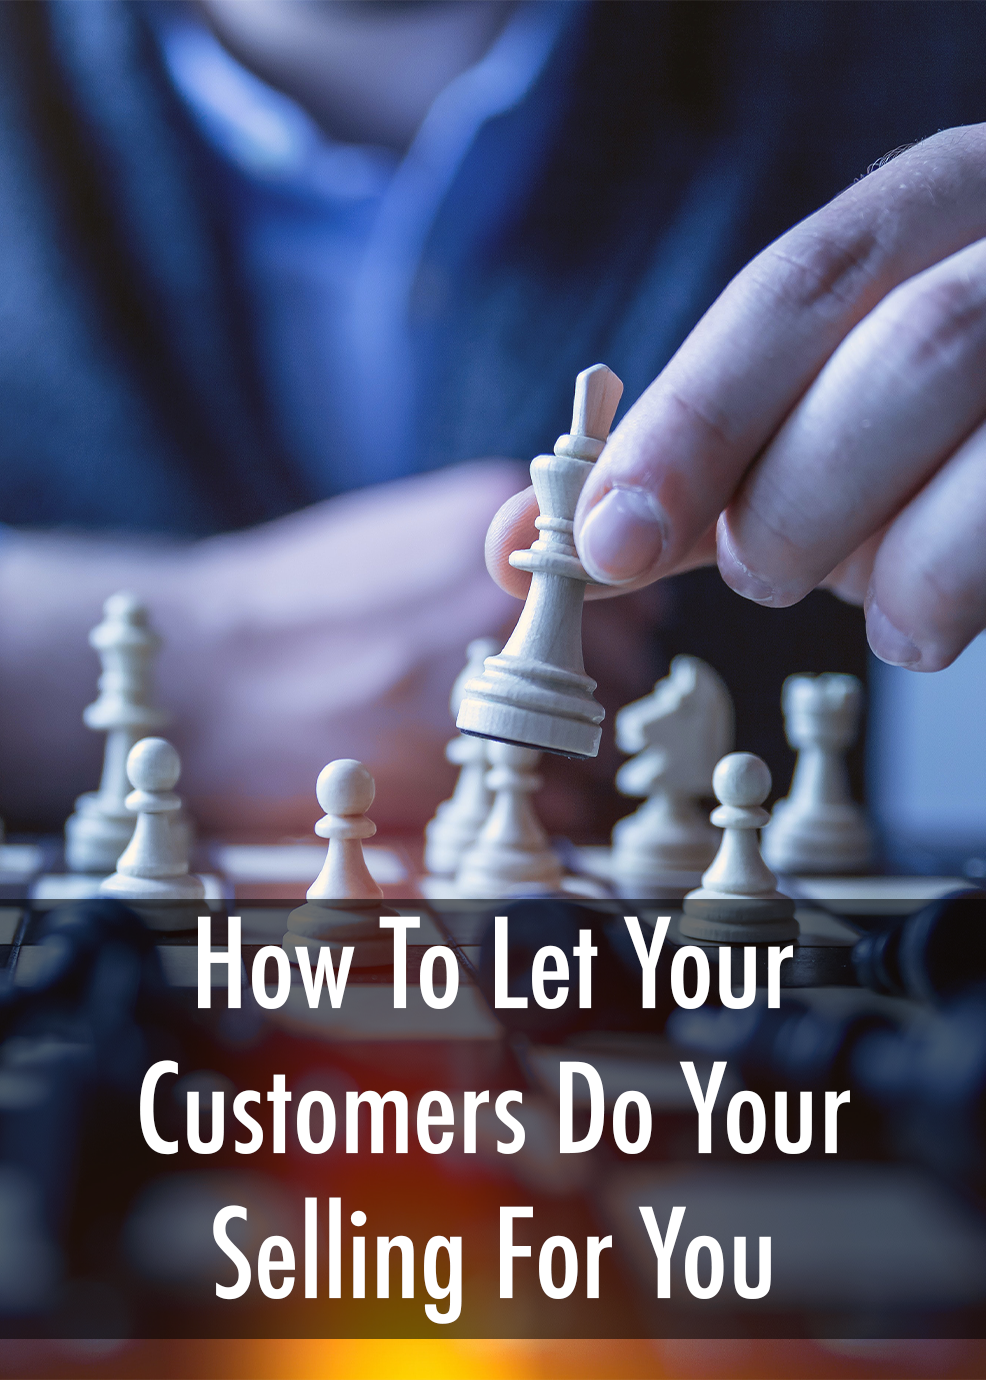 How To Let Your Customers Do Your Selling For You